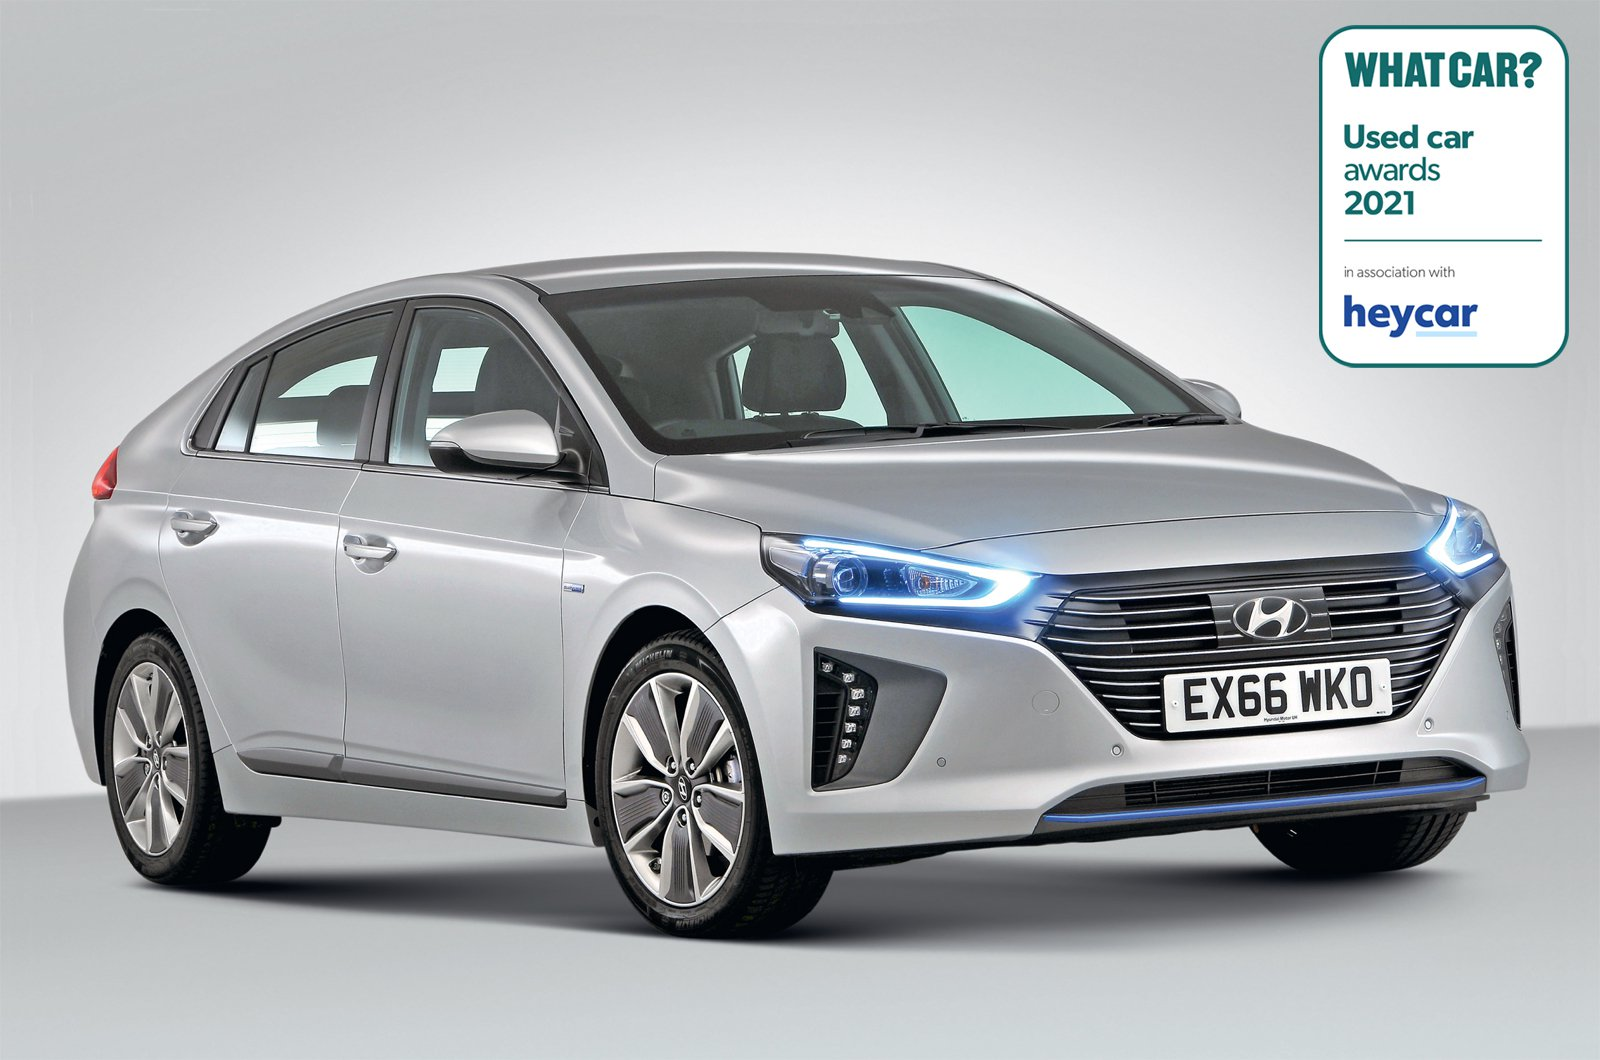 Used Car Awards 2021 - Hyundai Ioniq